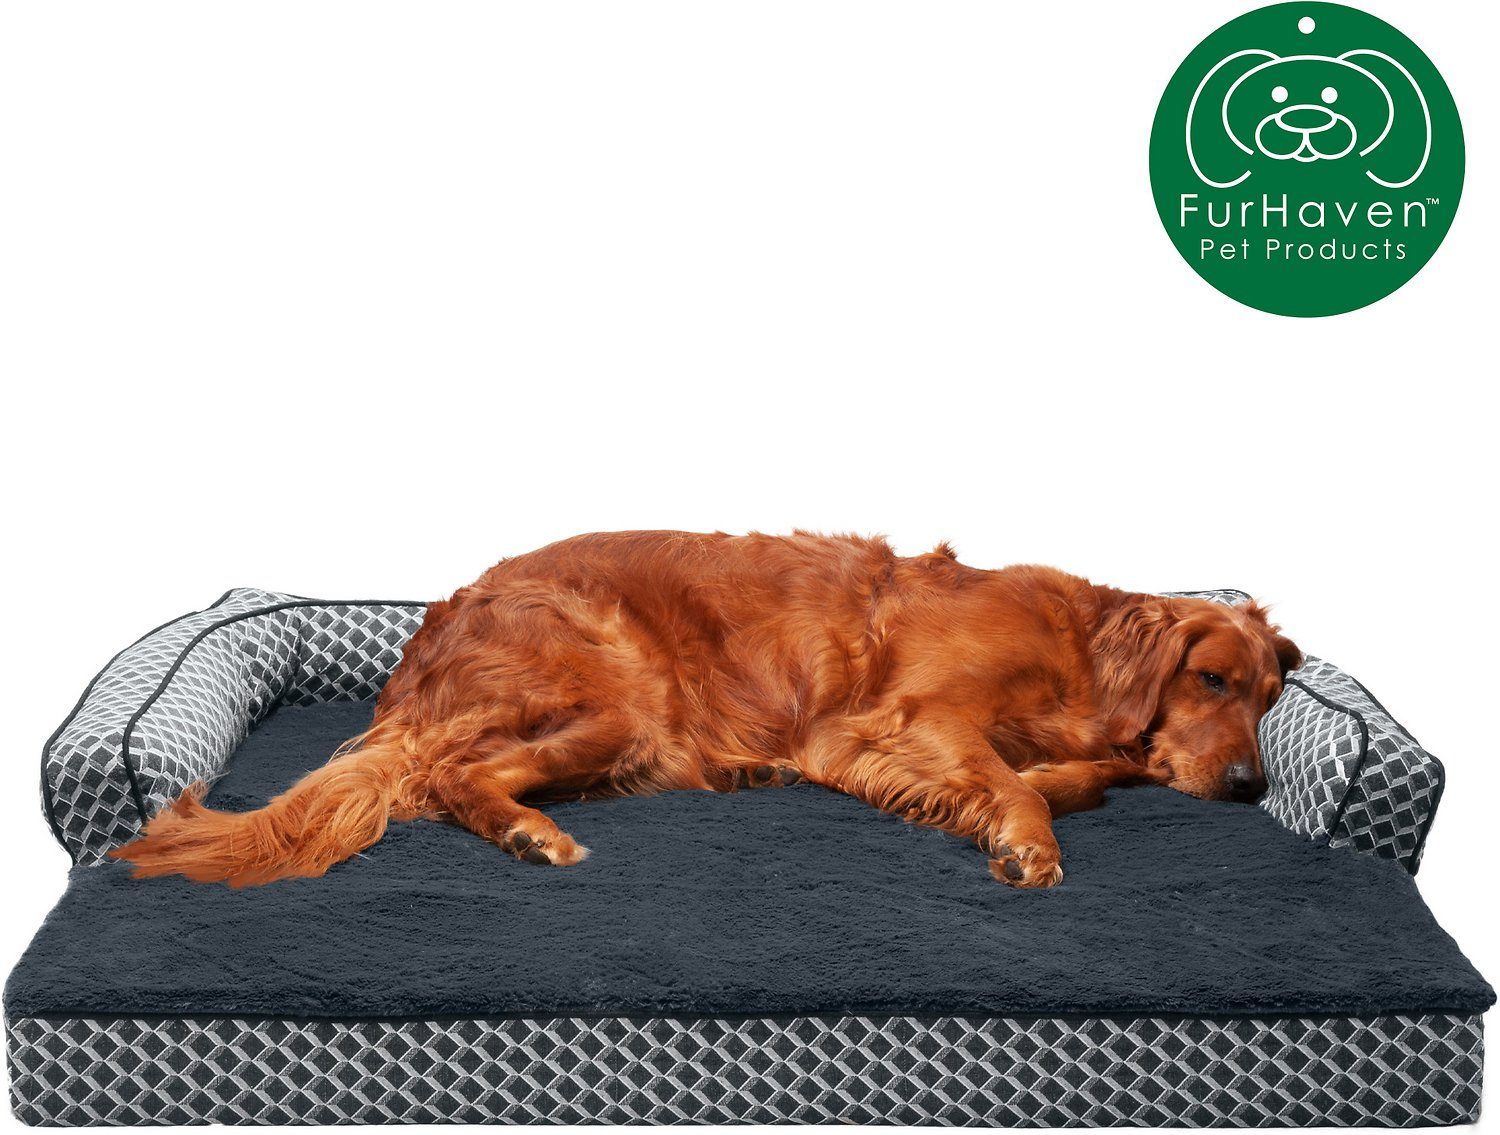 Furhaven Comfy Couch Orthopedic Sofa Dog Amp Cat Bed